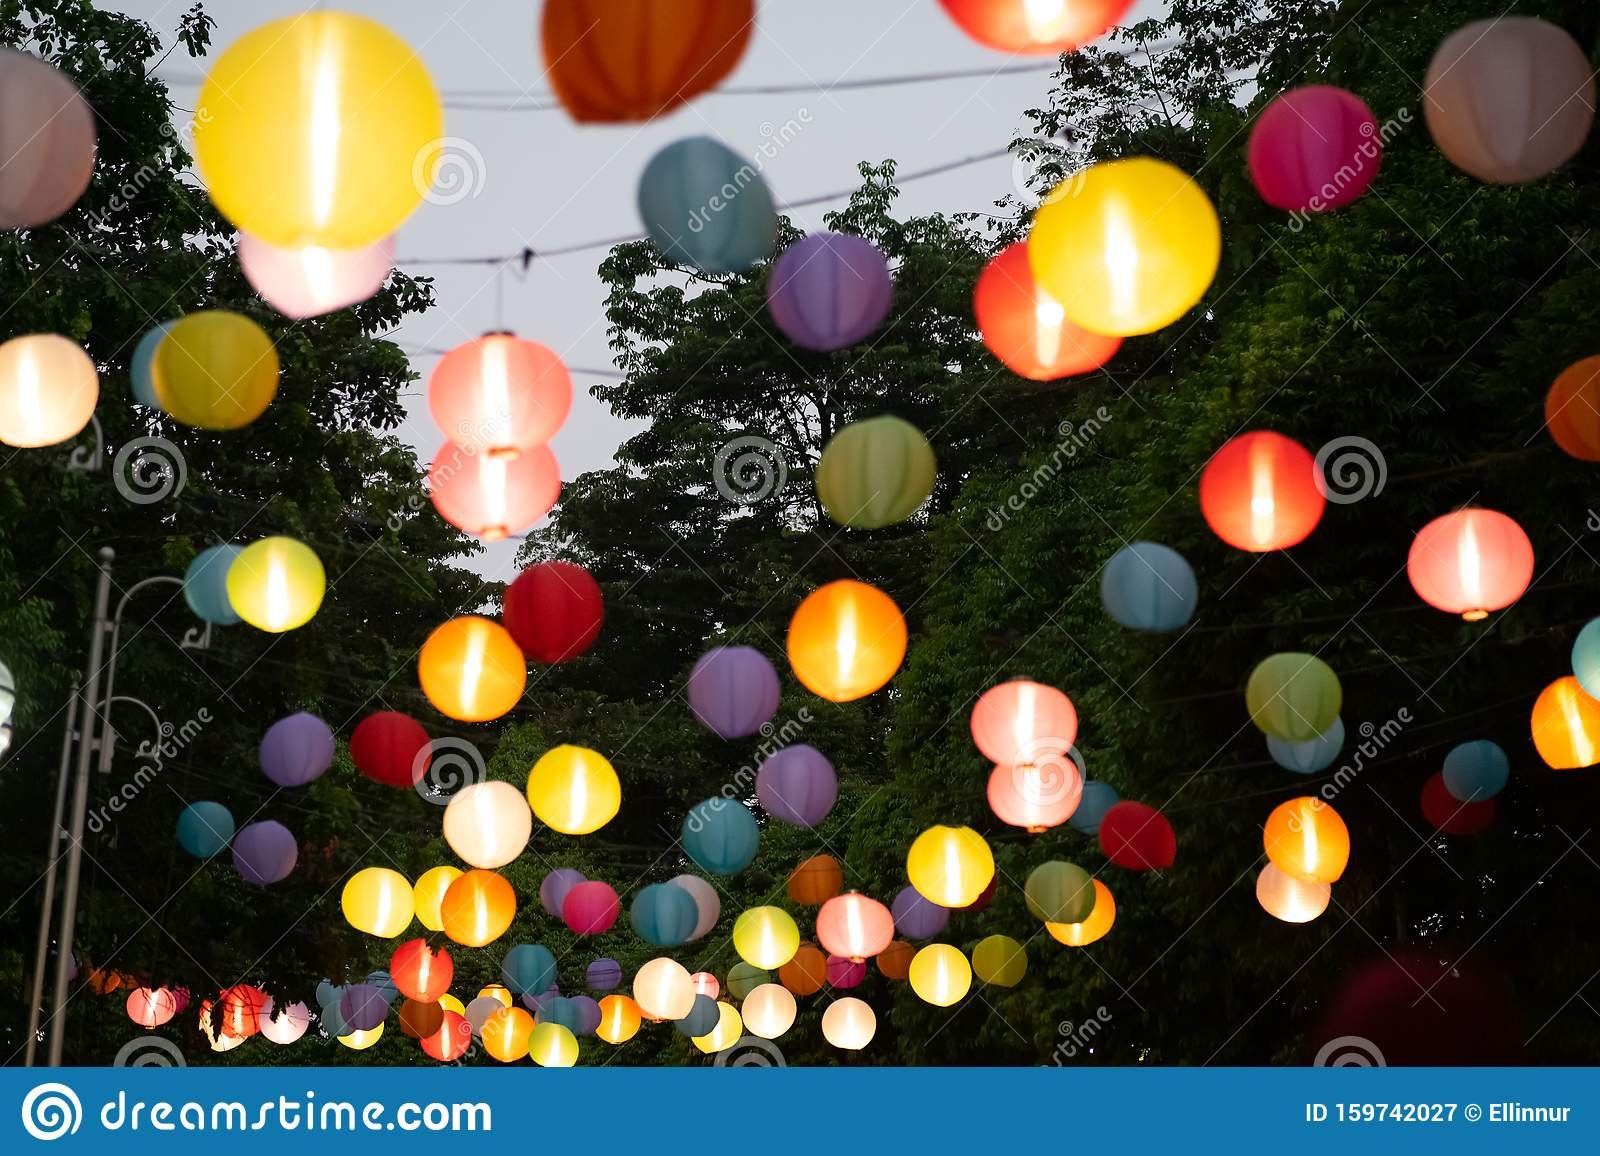 Colourful Lanterns Hanging In The Park Stock Image Image Of Bright Colorful 159742027